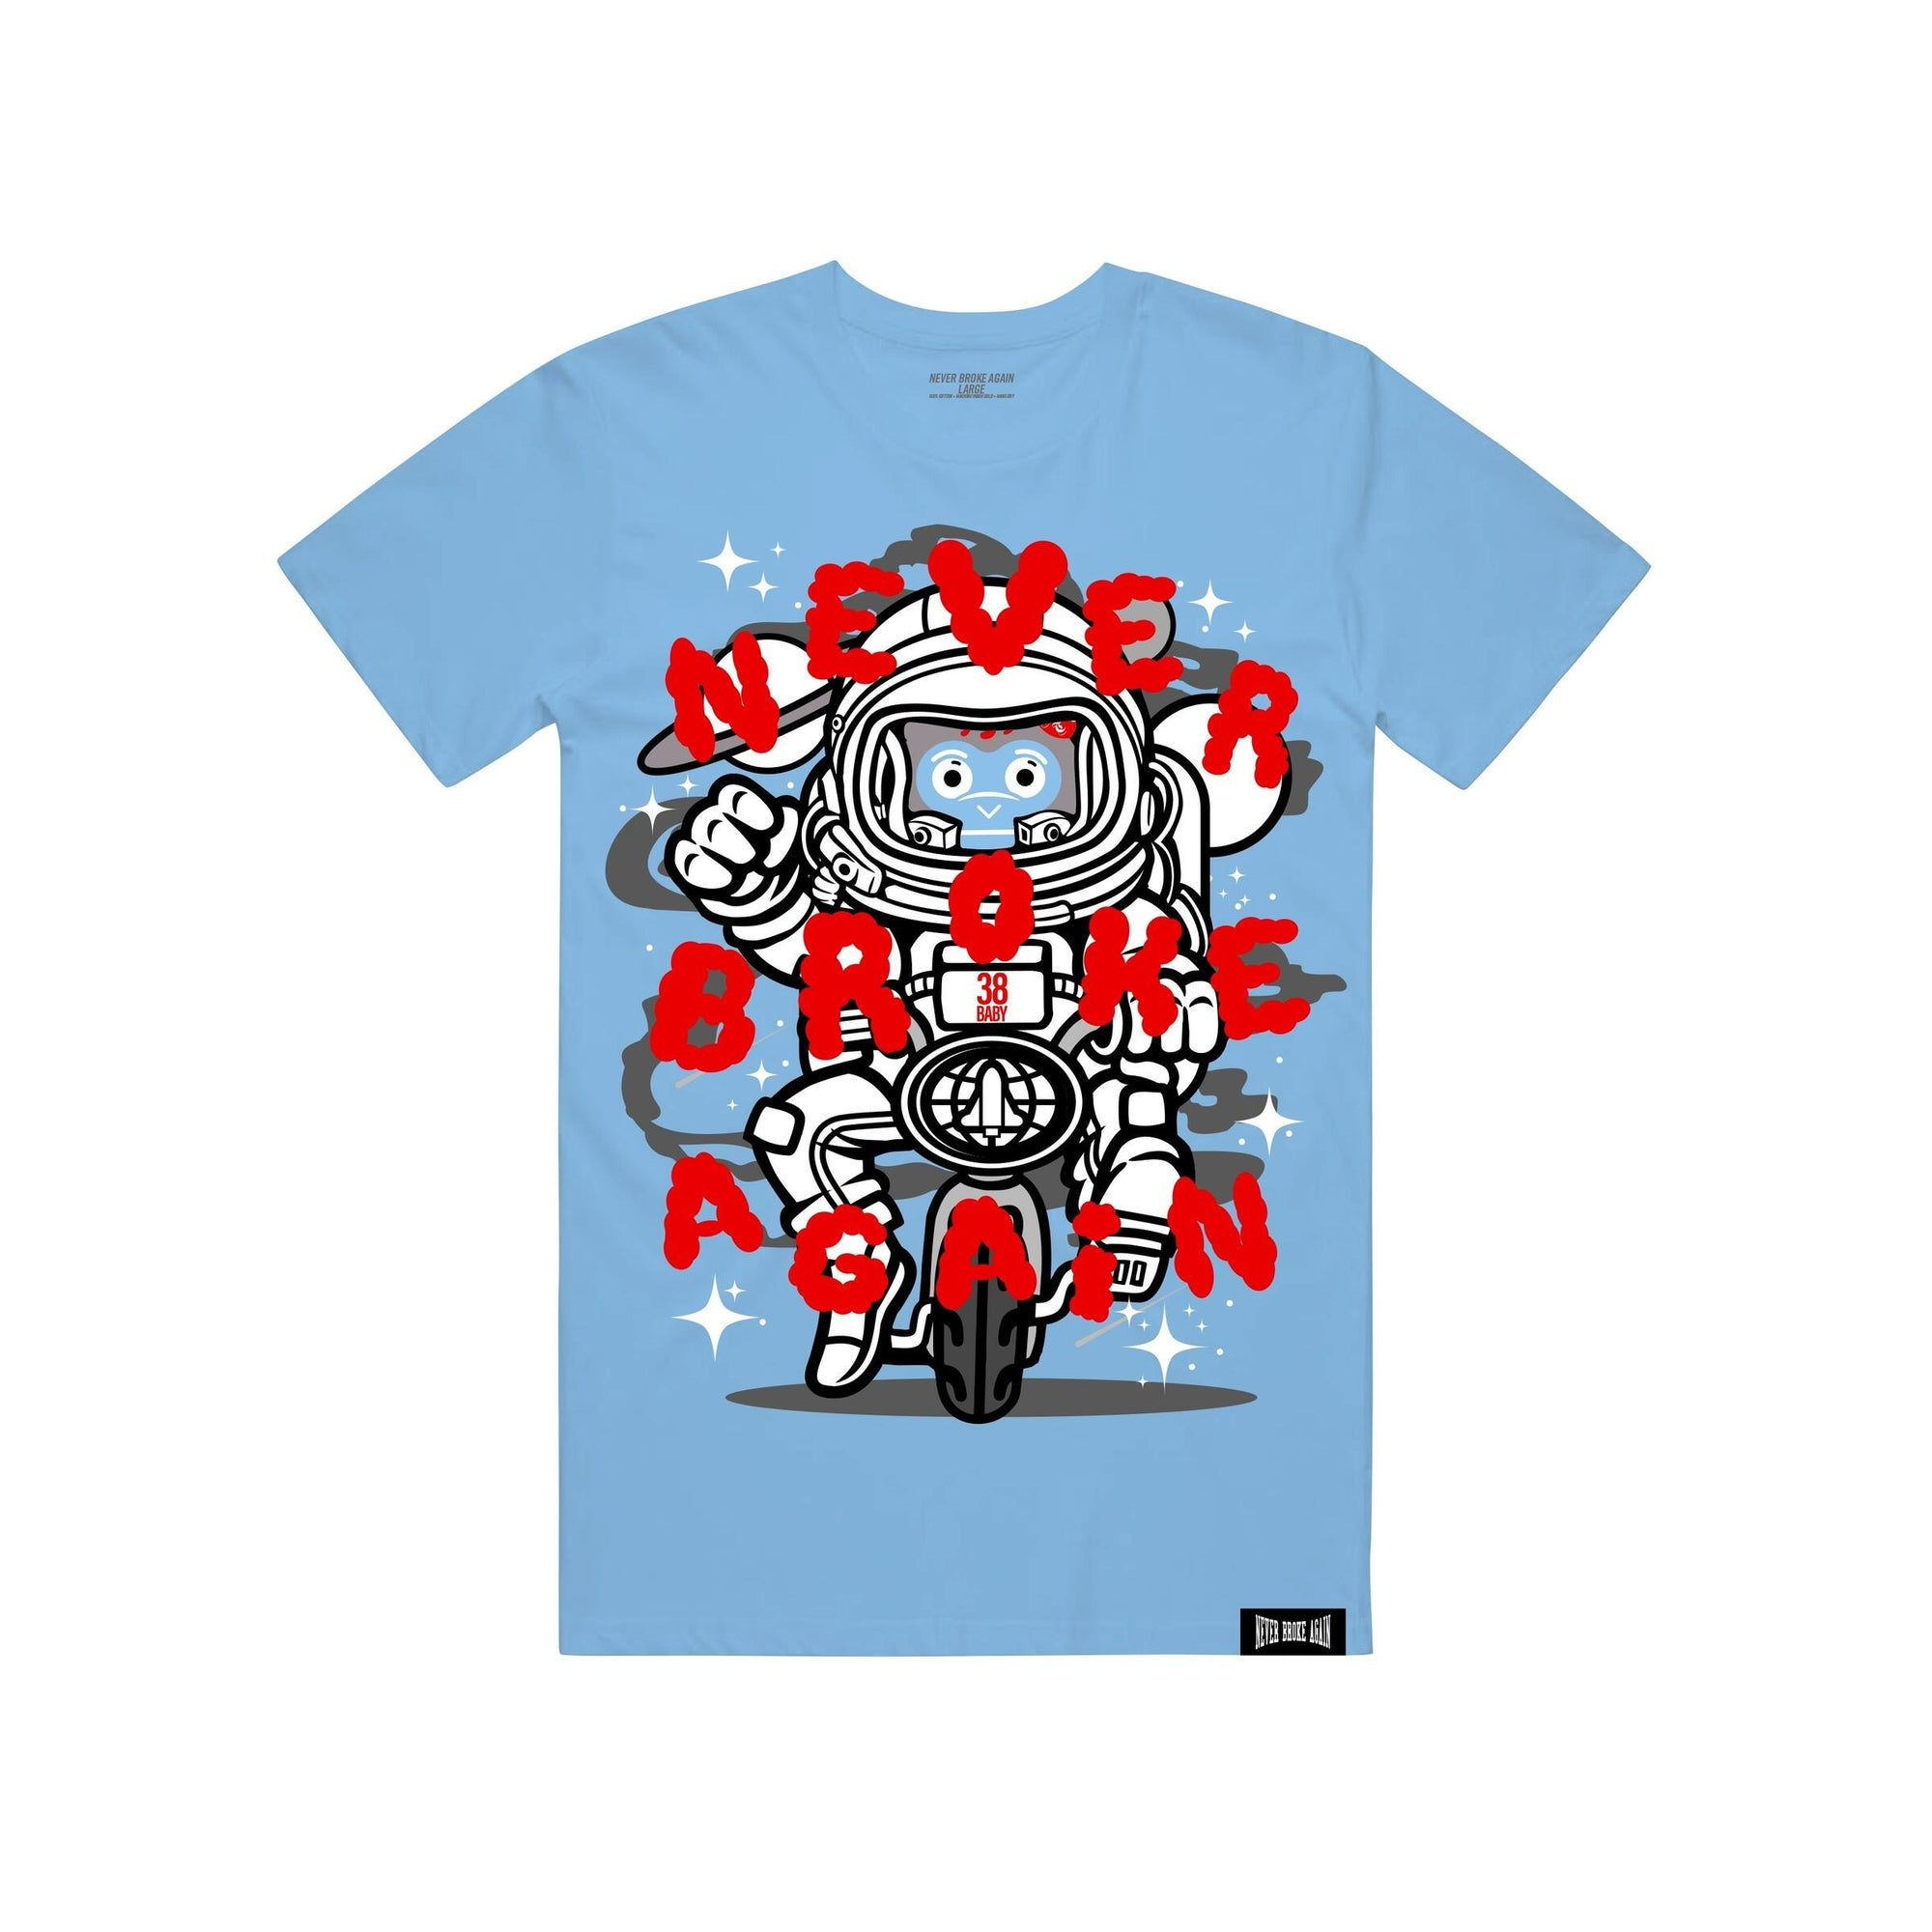 Never Broke Again Carolina Space T-shirt - FLY GUYZ